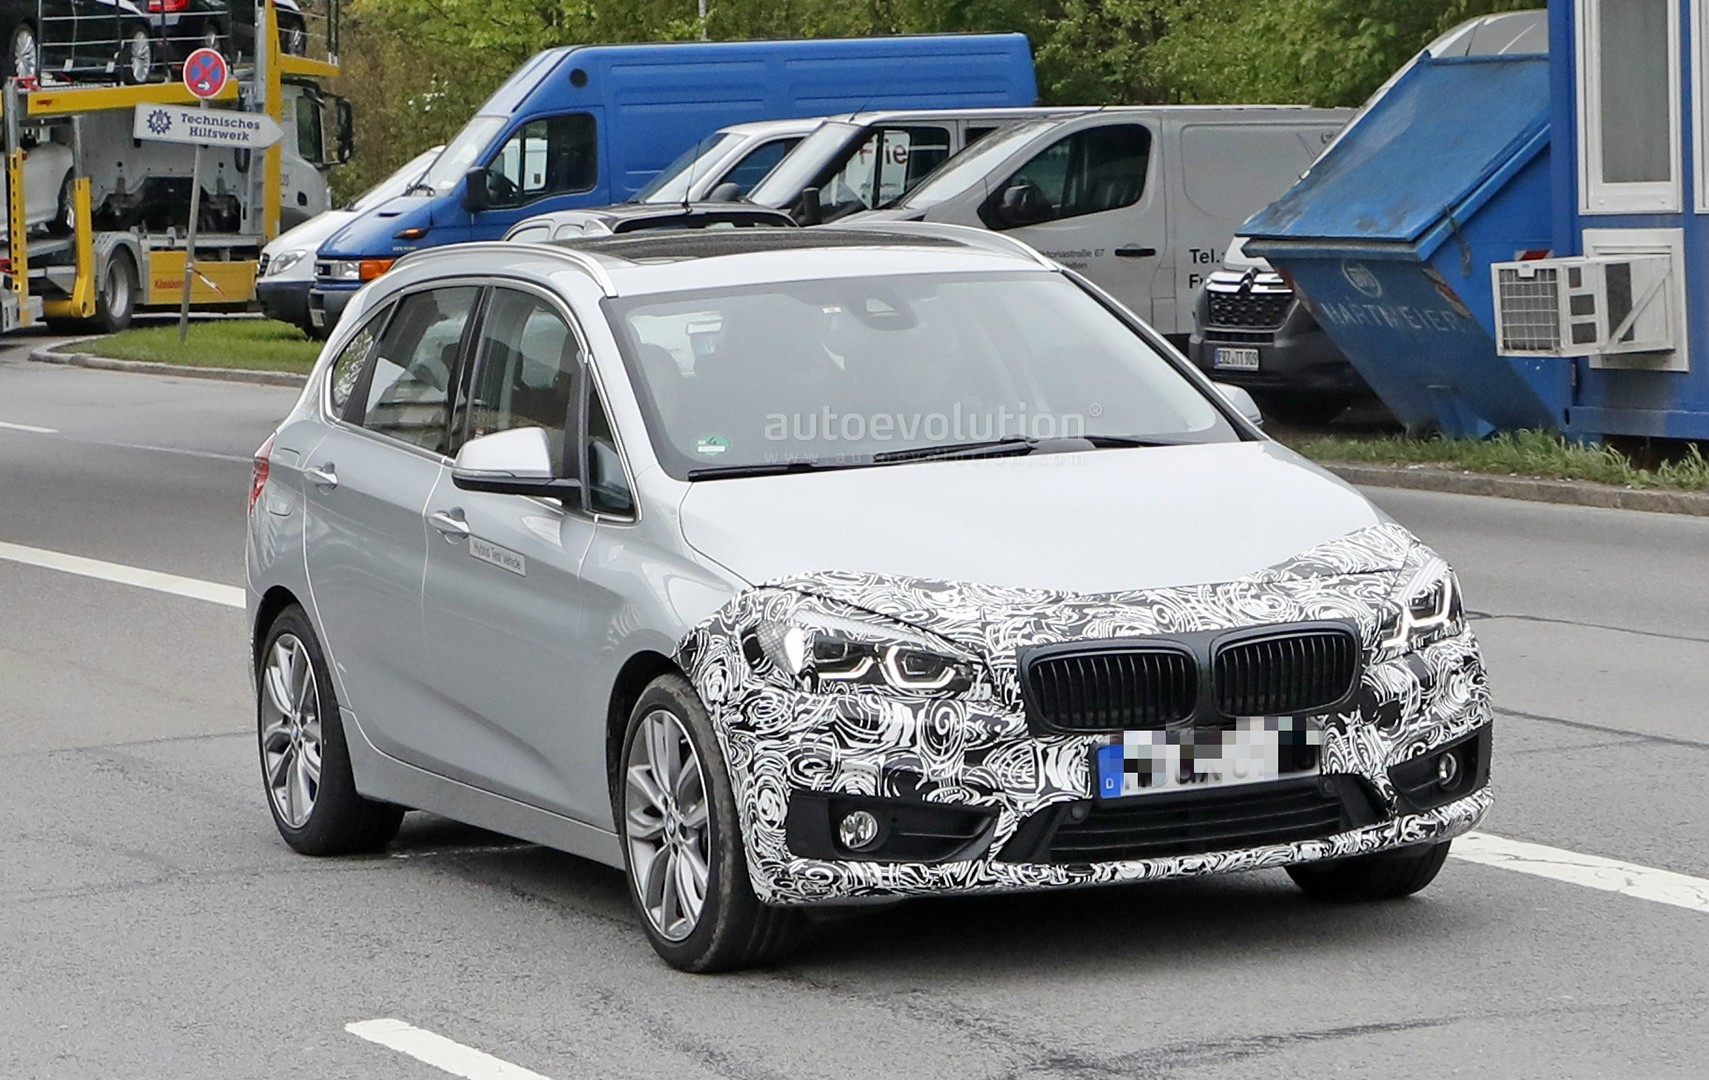 2018 - [BMW] Série 2 Active Tourer restylé  2018-bmw-2-series-active-tourer-spied-with-cool-new-headlights_2